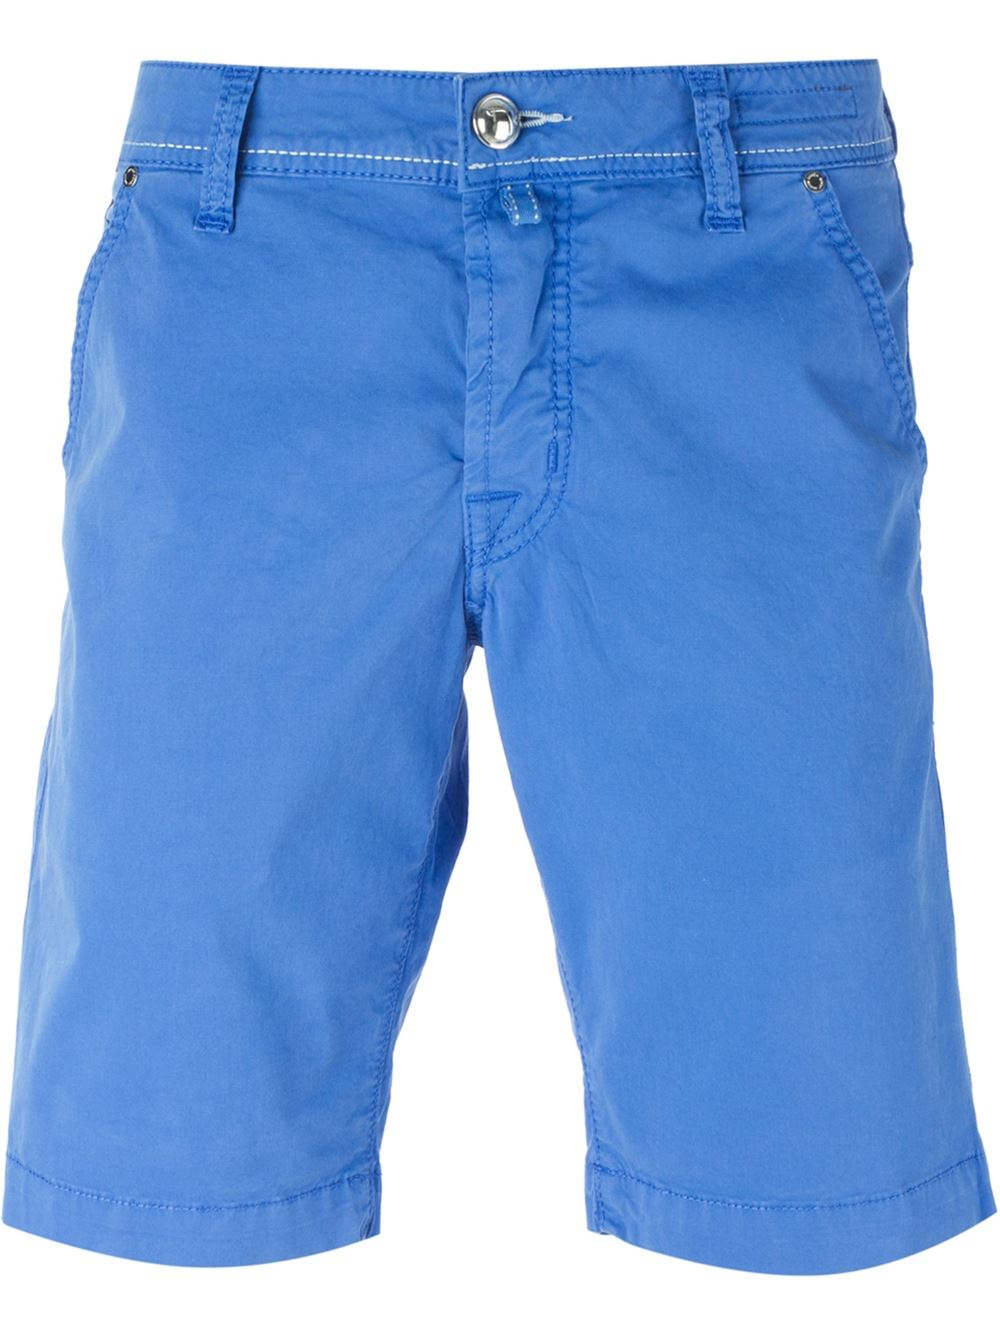 Levi's® shorts are a warm-weather essential. Keep it casual in this sleek short silhouette, constructed from stretch denim for comfort. Roll the hem for added style.